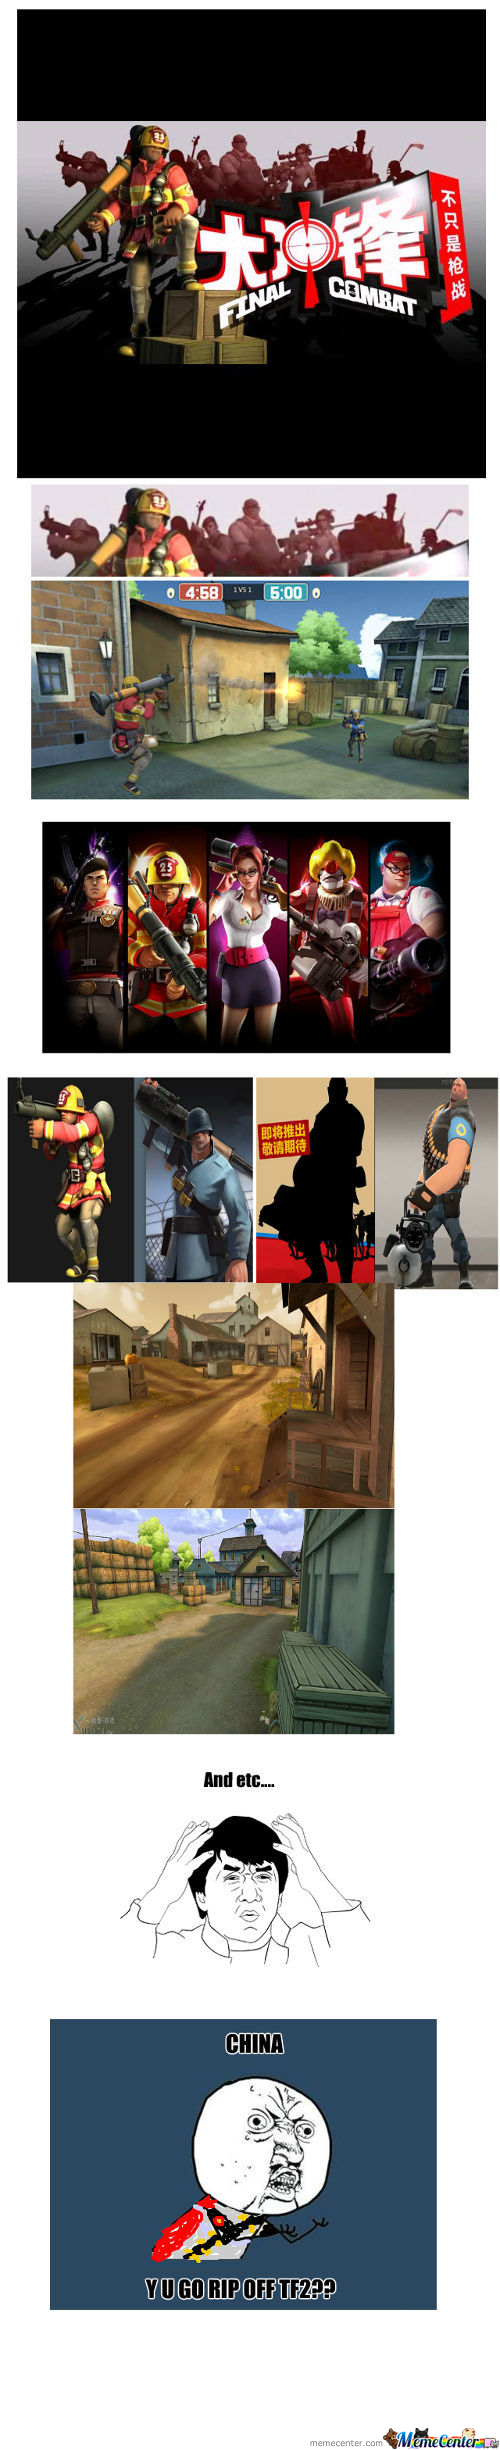 Team Fortress China